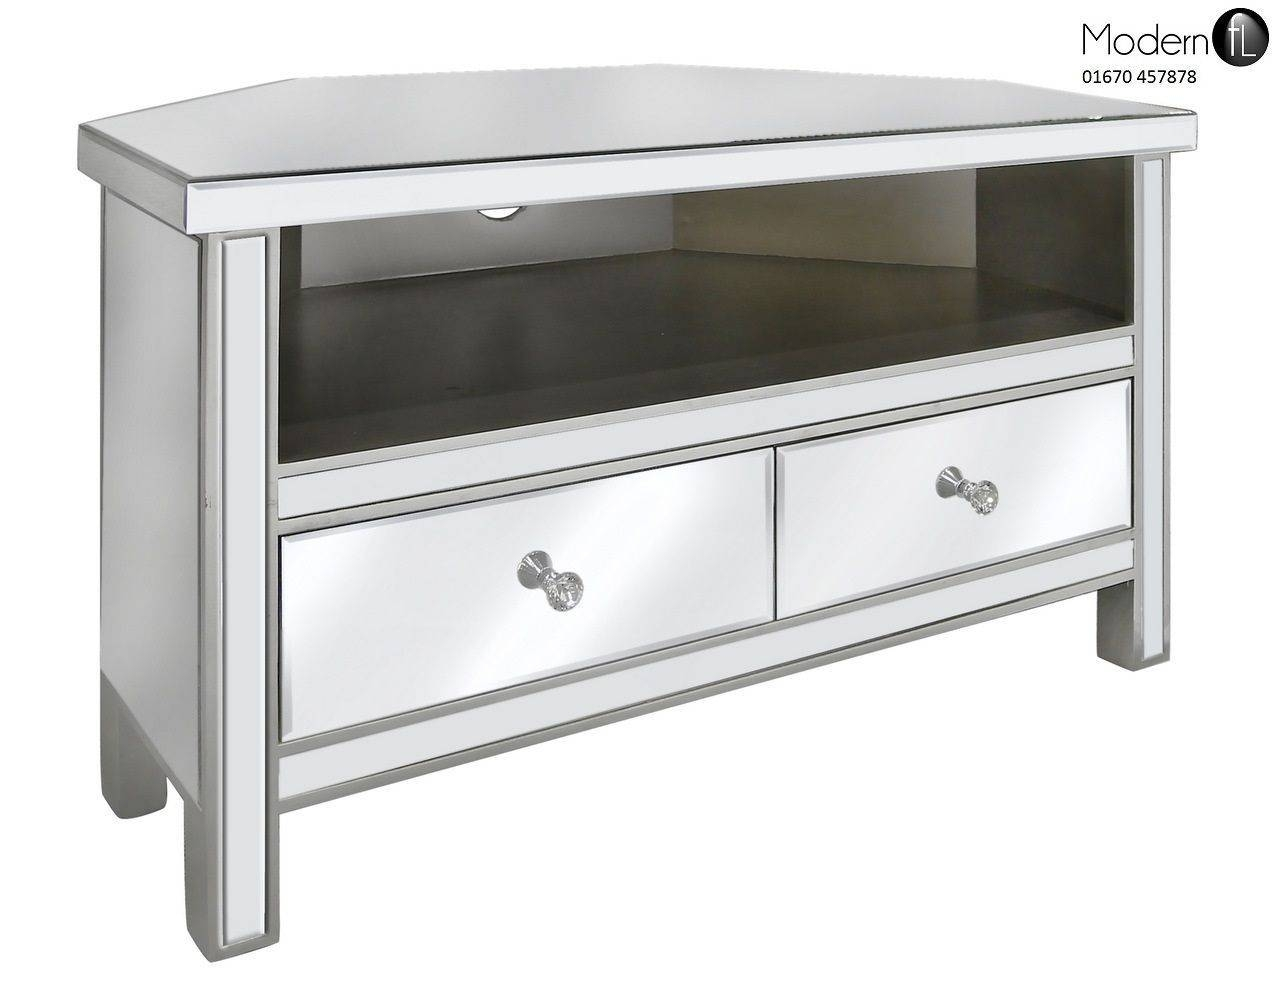 Venetian Mirrored Corner Tv Stand Mirrored Corner Tv Cabinet With Throughout Silver Corner Tv Stands (View 15 of 15)